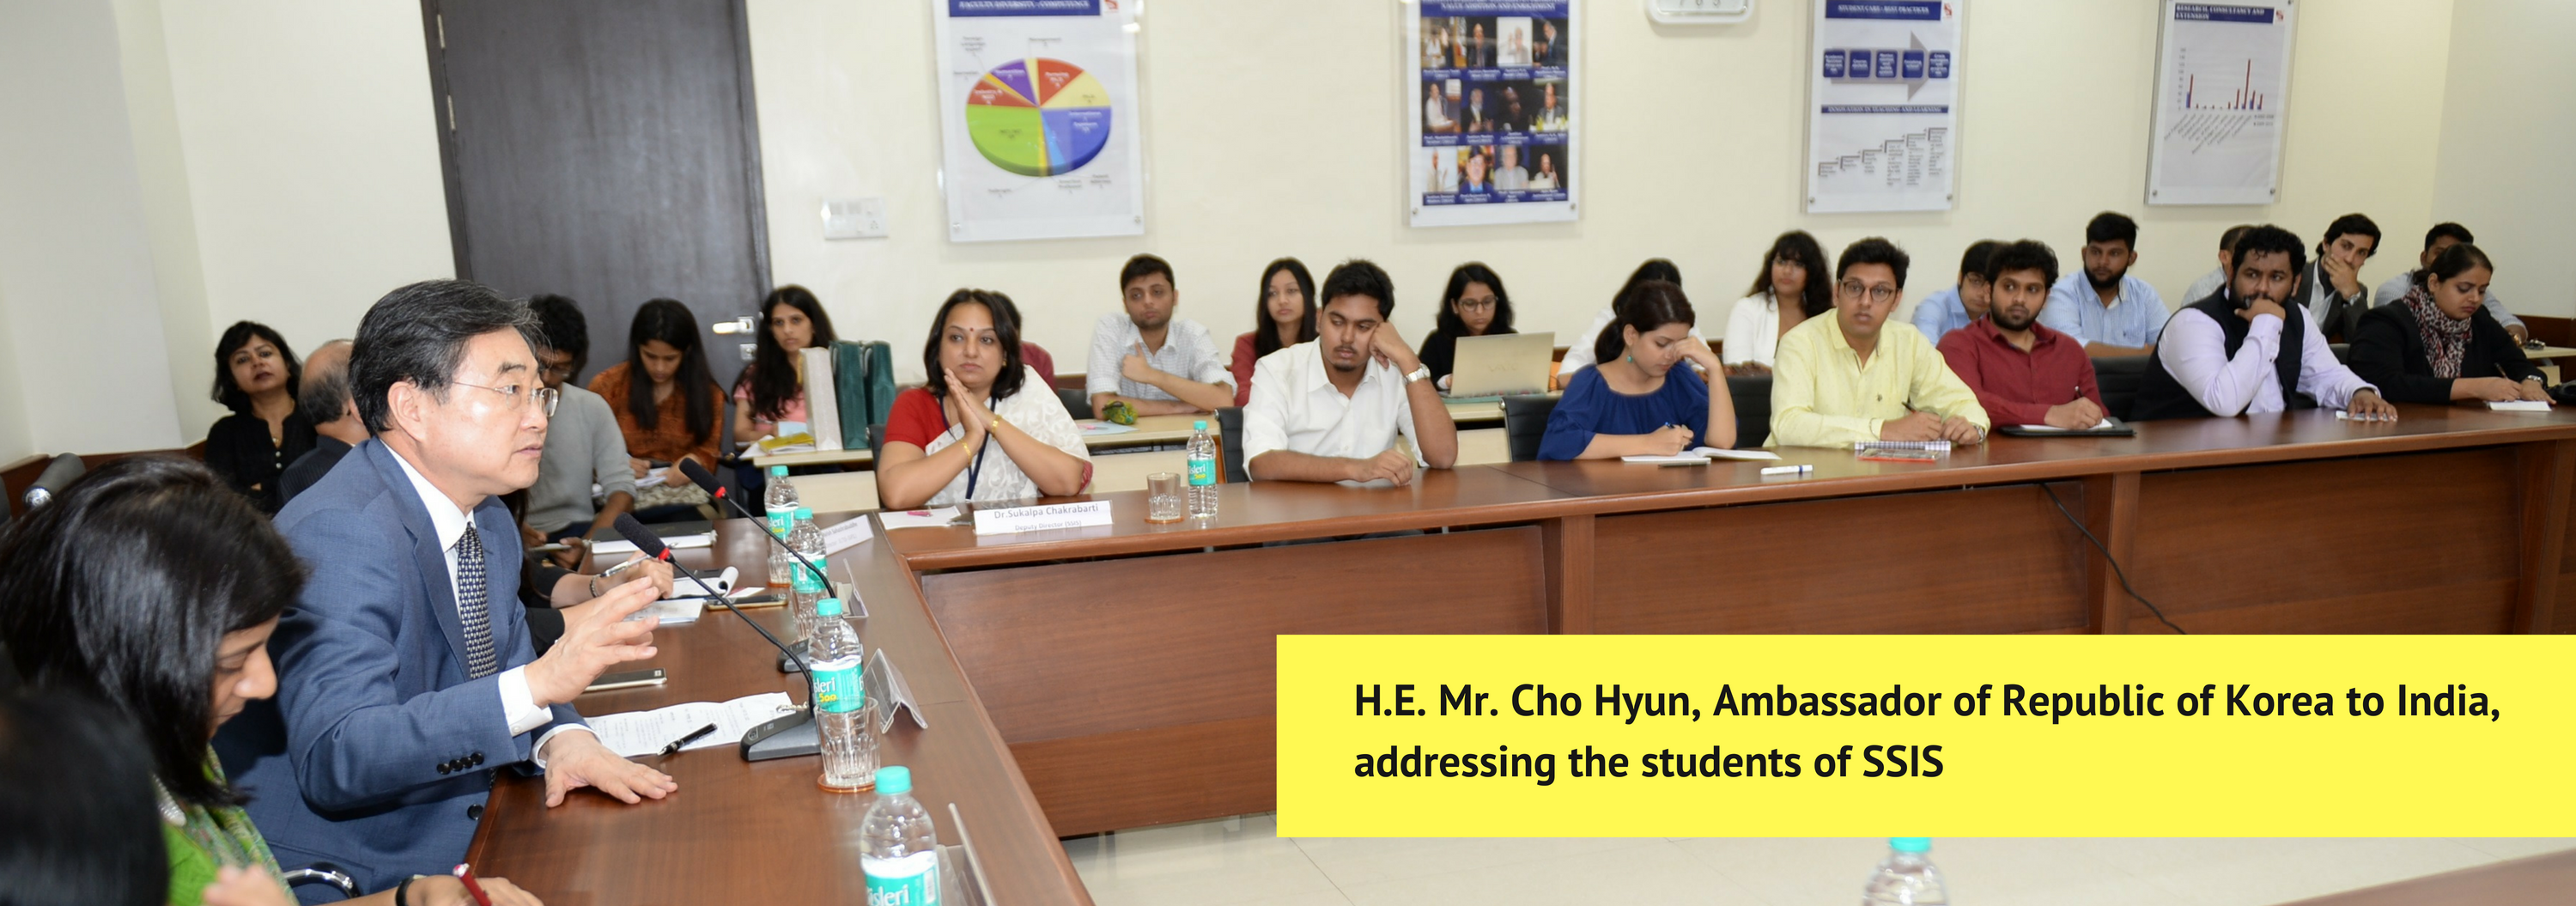 Guest Lecture by His Excellency Mr. Cho Hyun, Ambassador of Republic of South Korea to India